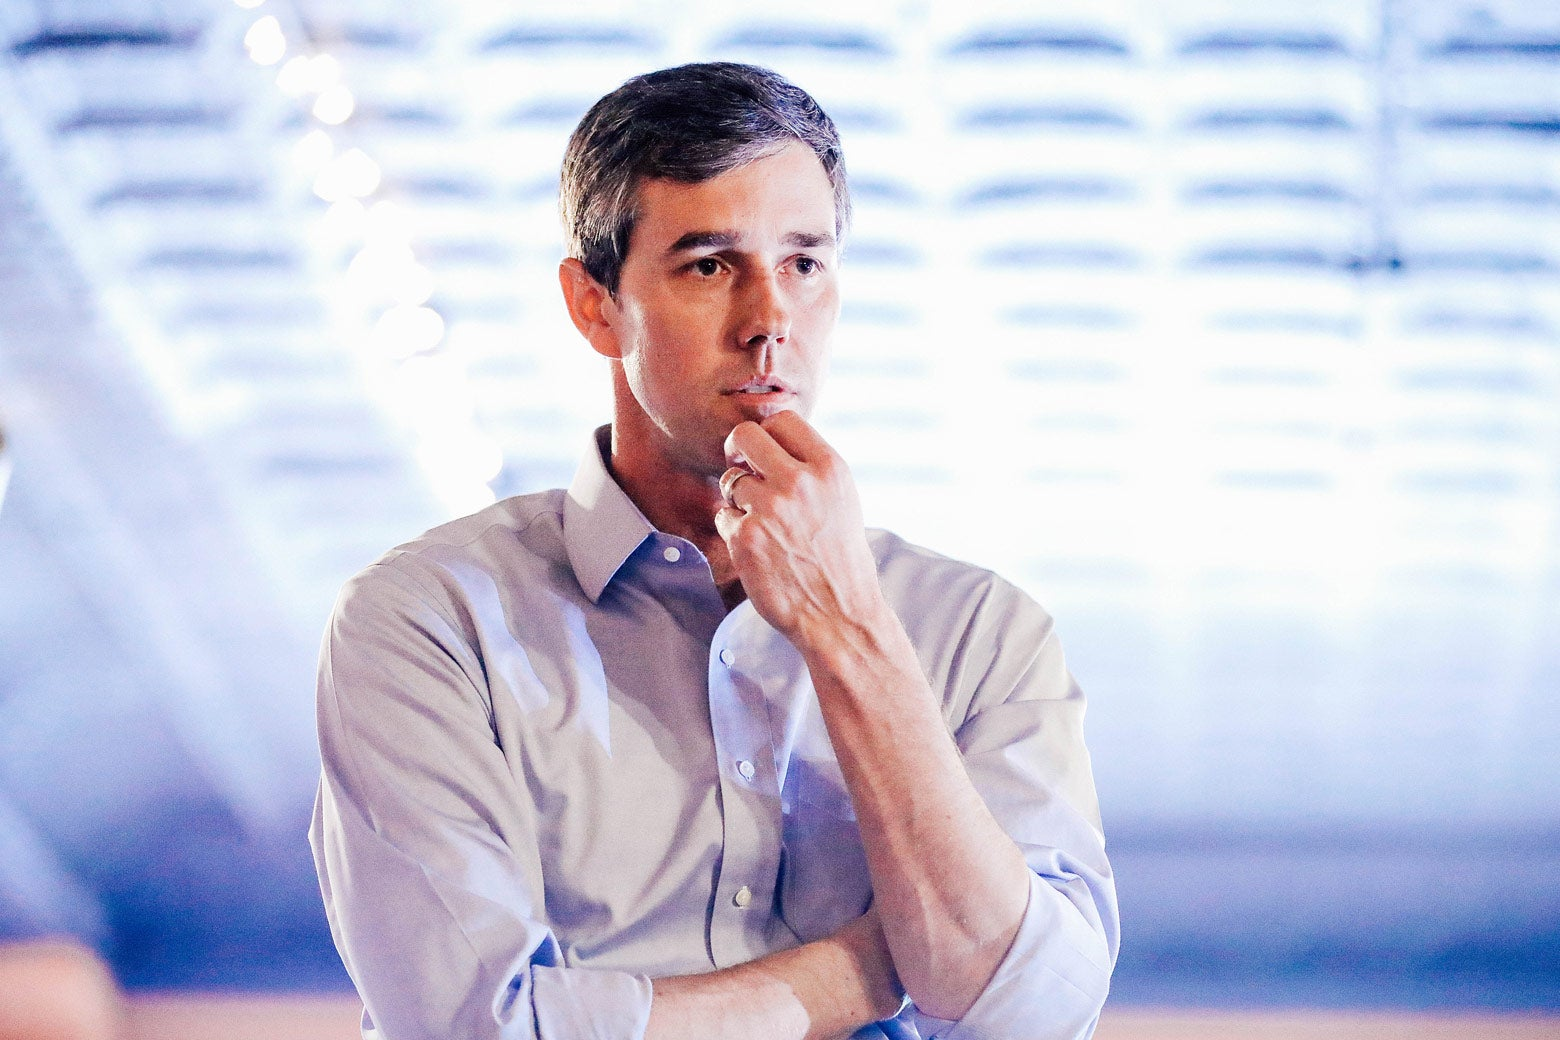 Democratic presidential candidate Beto O'Rourke talks with voters in Mount Pleasant, Iowa, on Friday.